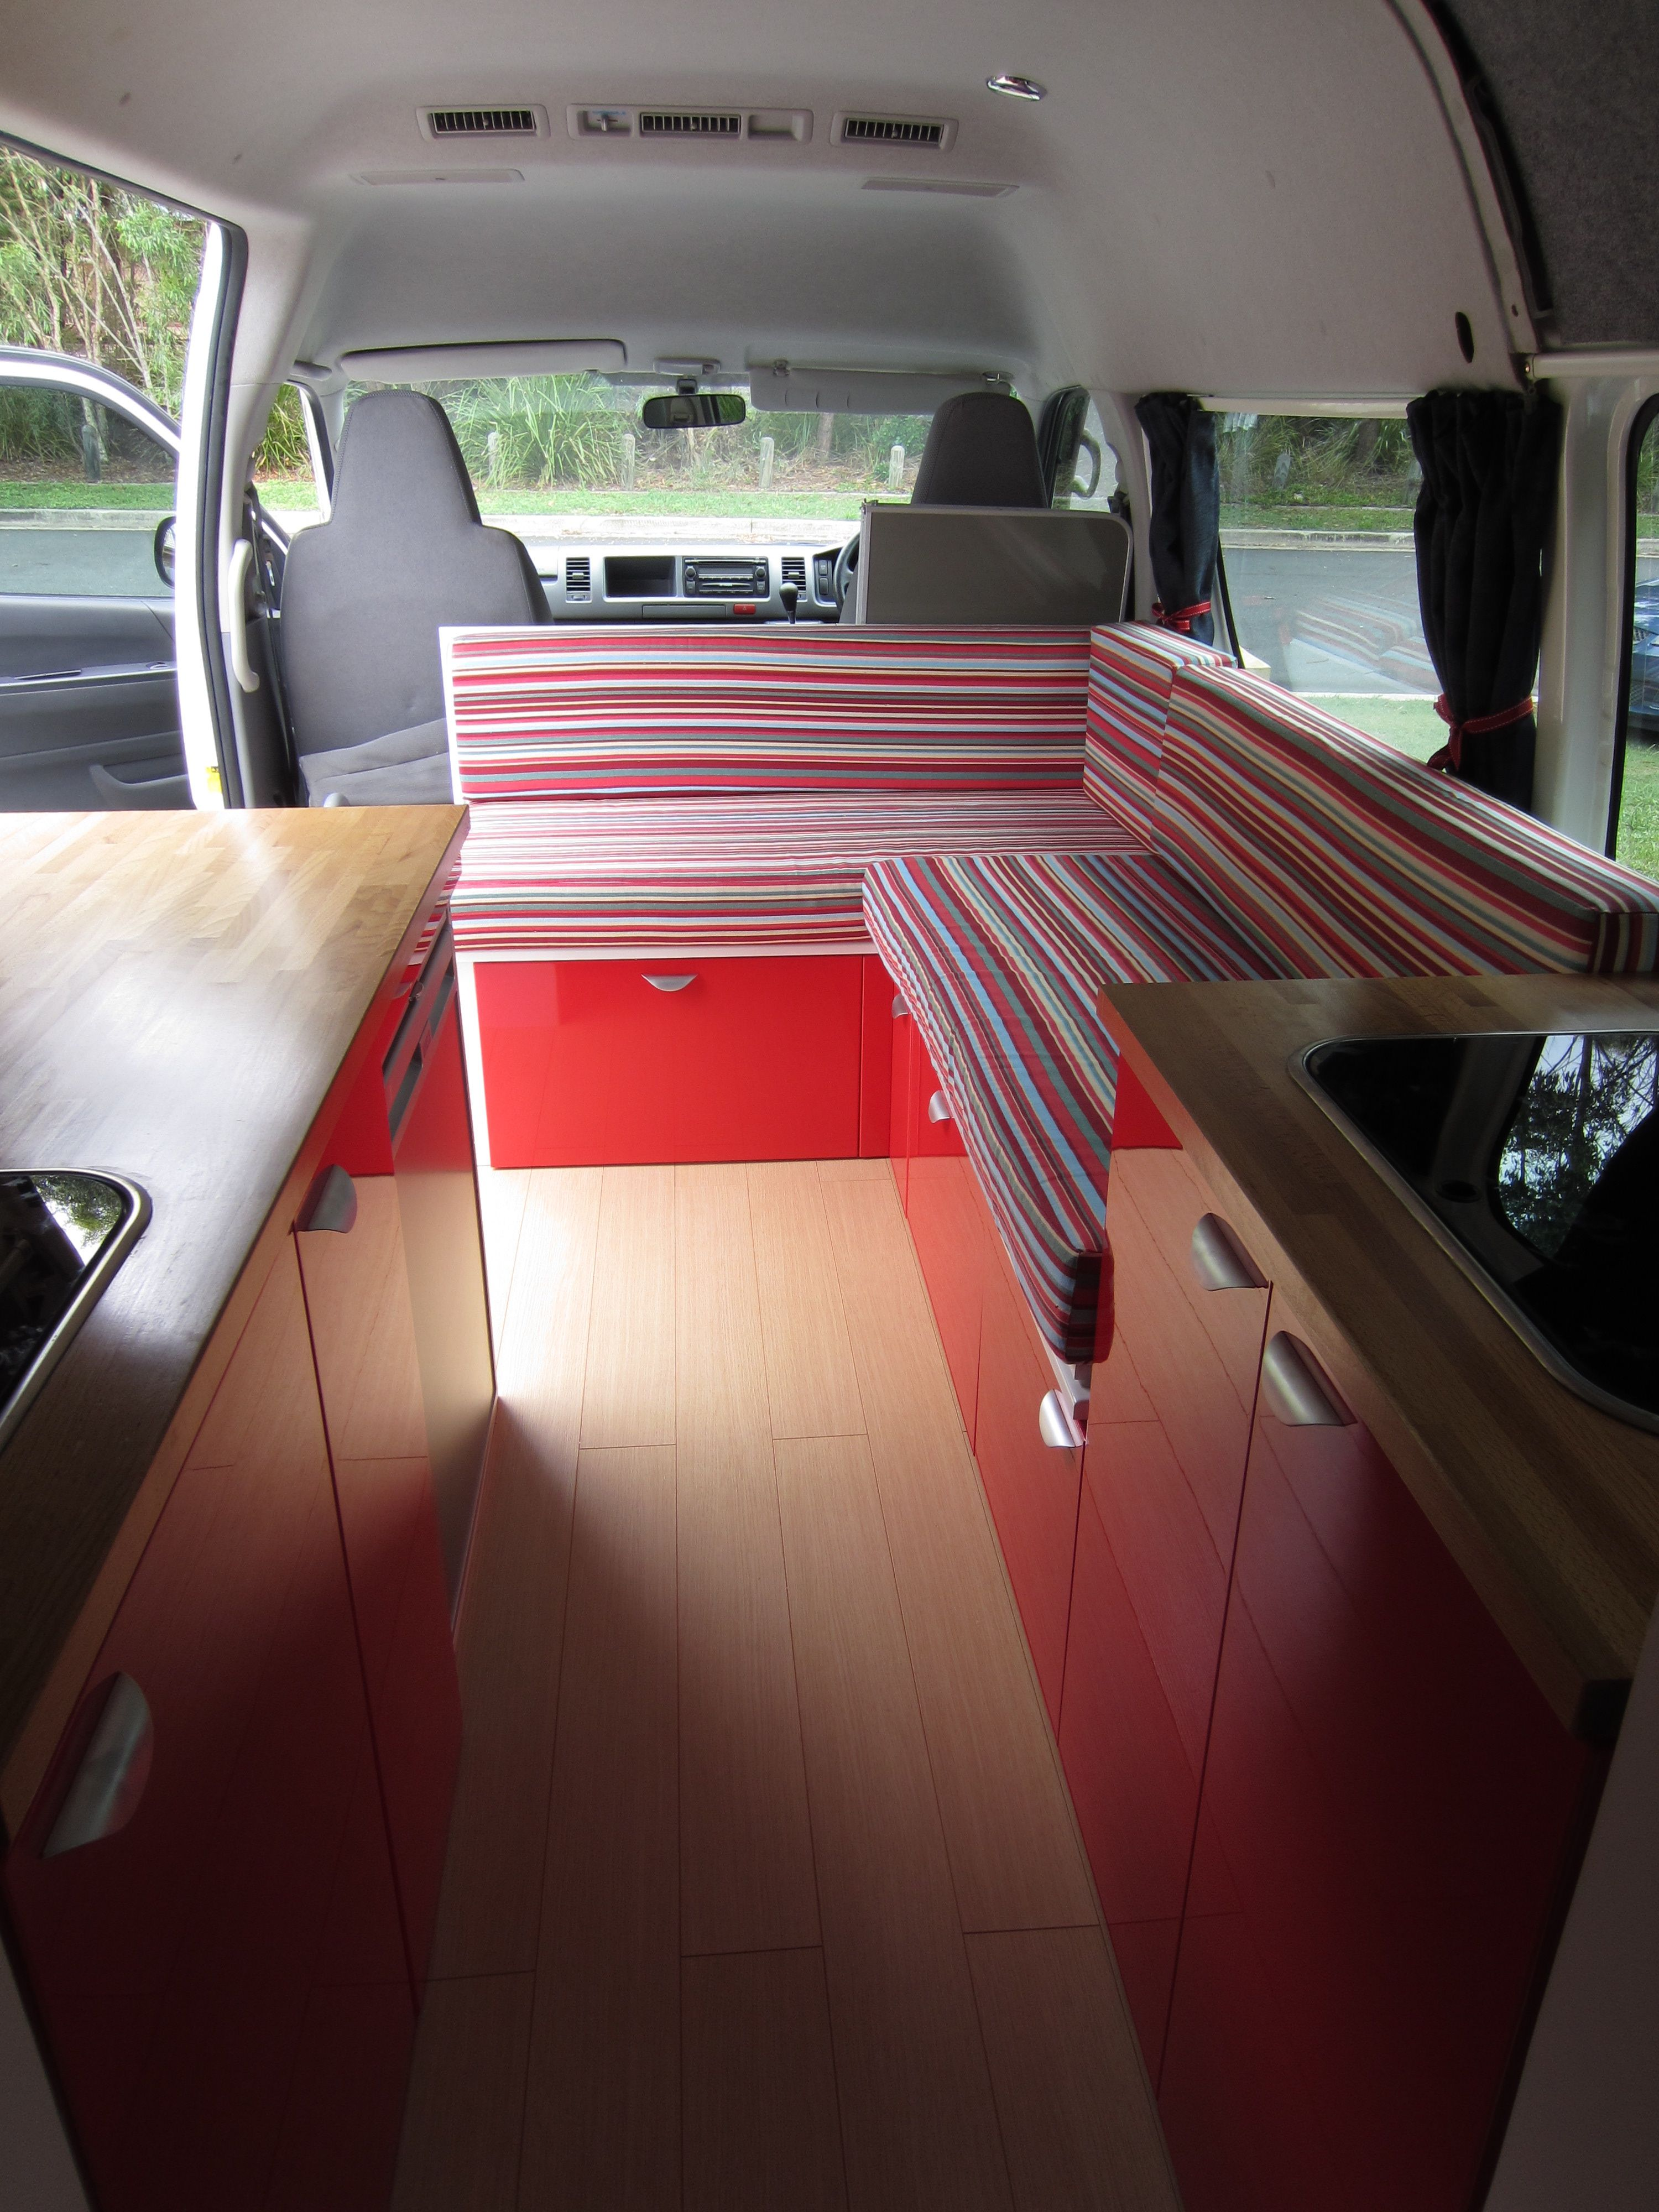 Like This In The Back Except Sink And Stove And Front Passenger Seat On One Side Shower Closet An Diy Campervan Campervan Conversions Cargo Van Conversion